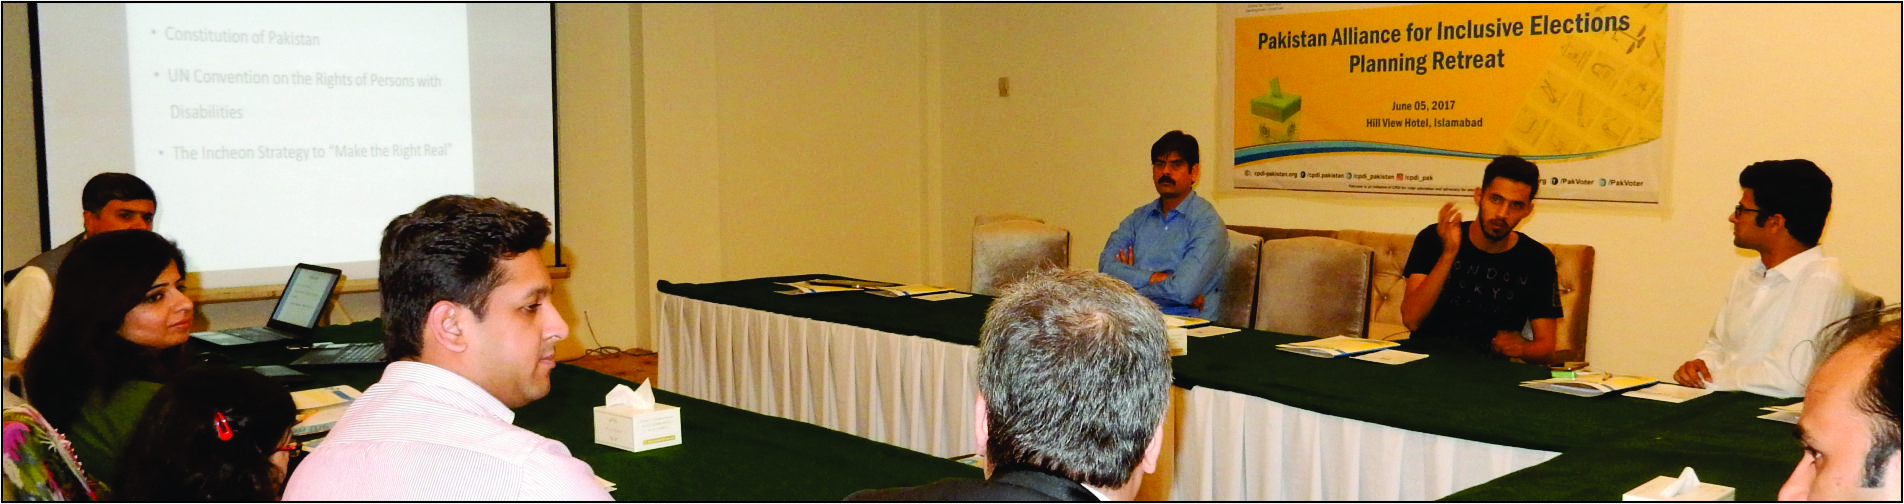 Pakistan Alliance for Inclusive Elections – Planning Retreat